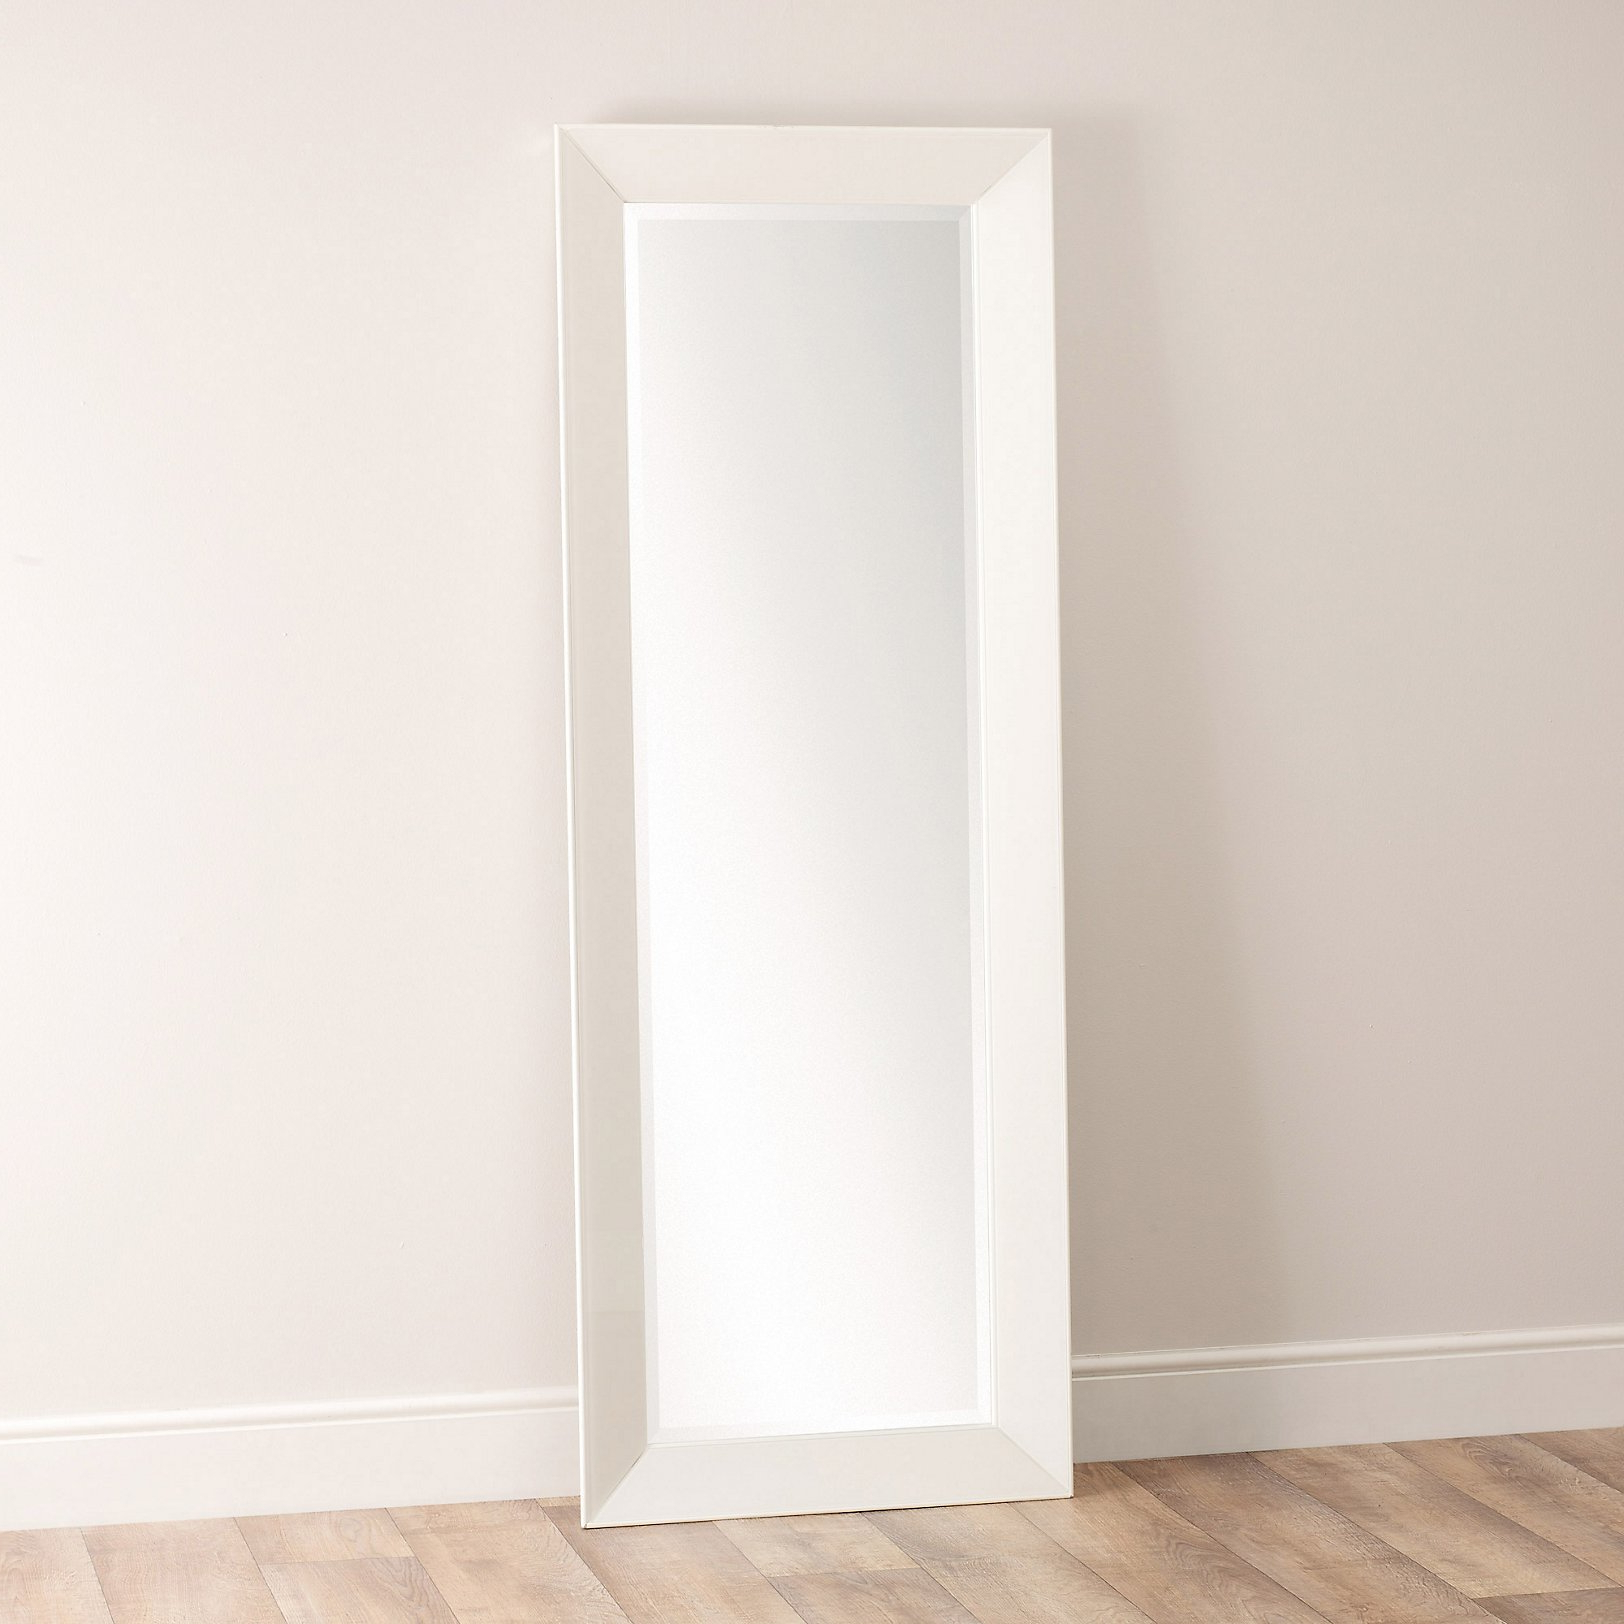 White Full Length Wall Mirrors Intended For Newest Mirrors Stunning Framed Full Length Mirror Vanity Bathroom (View 18 of 20)